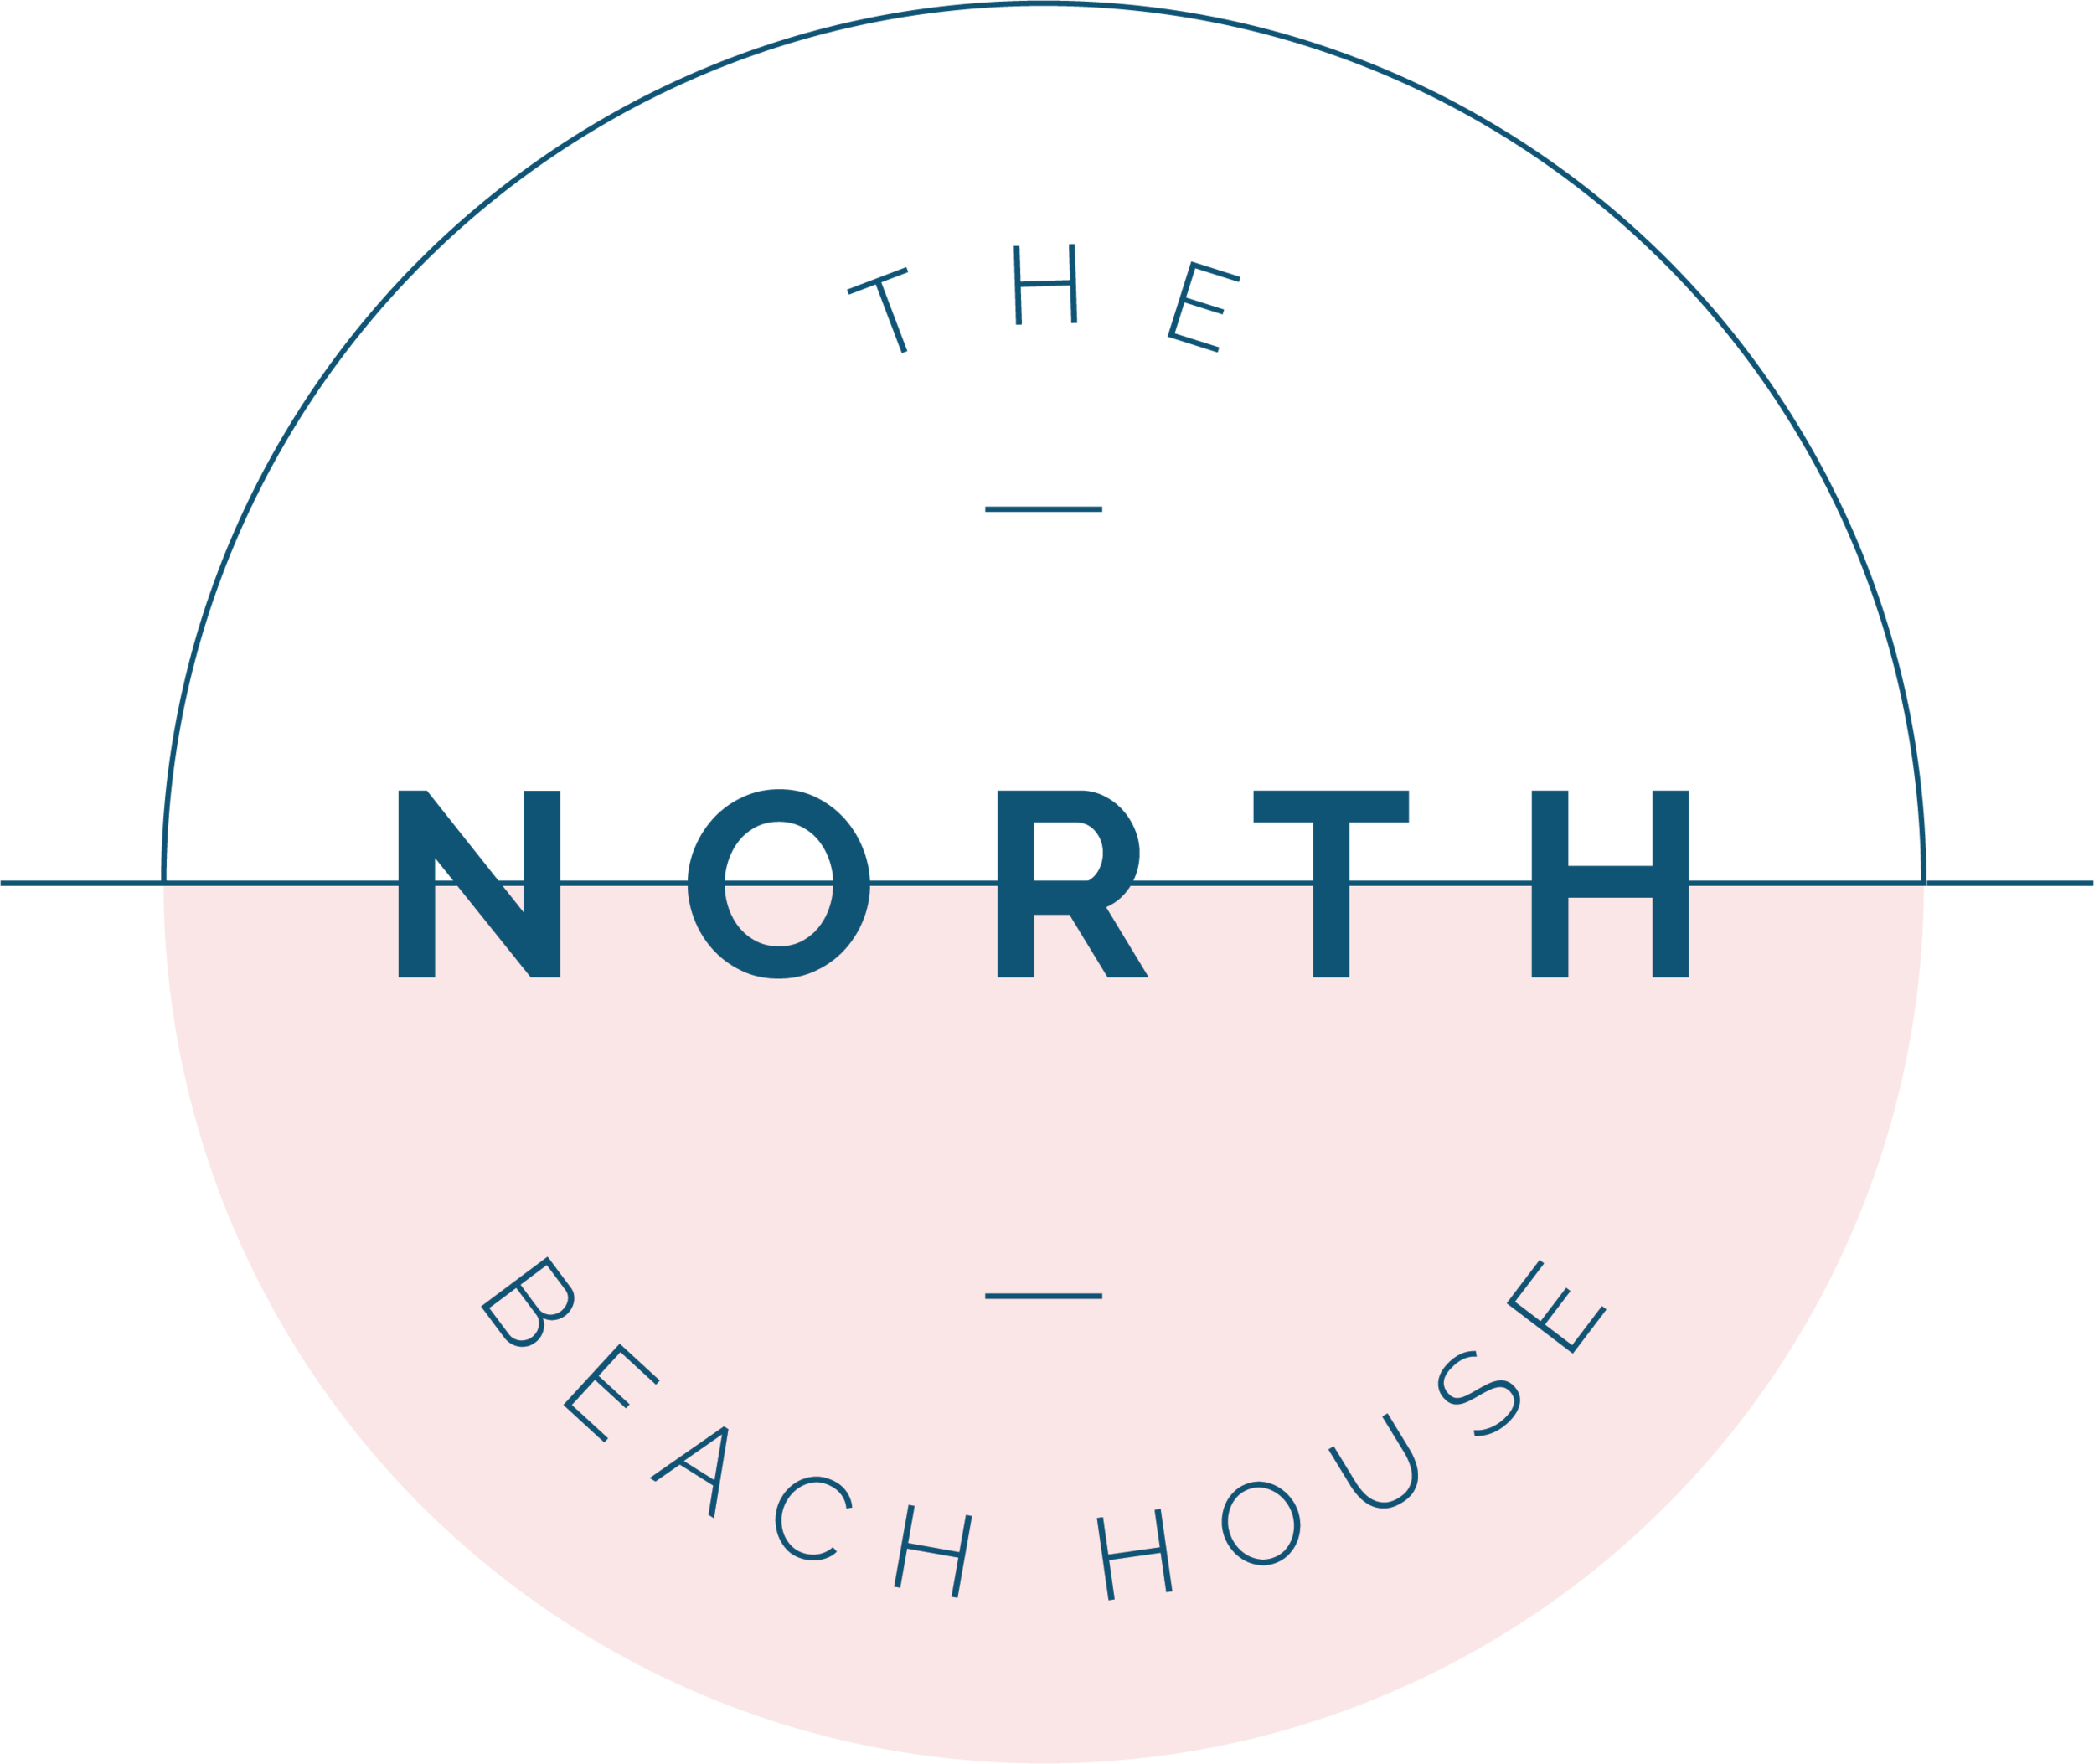 NORTH LOGO.png